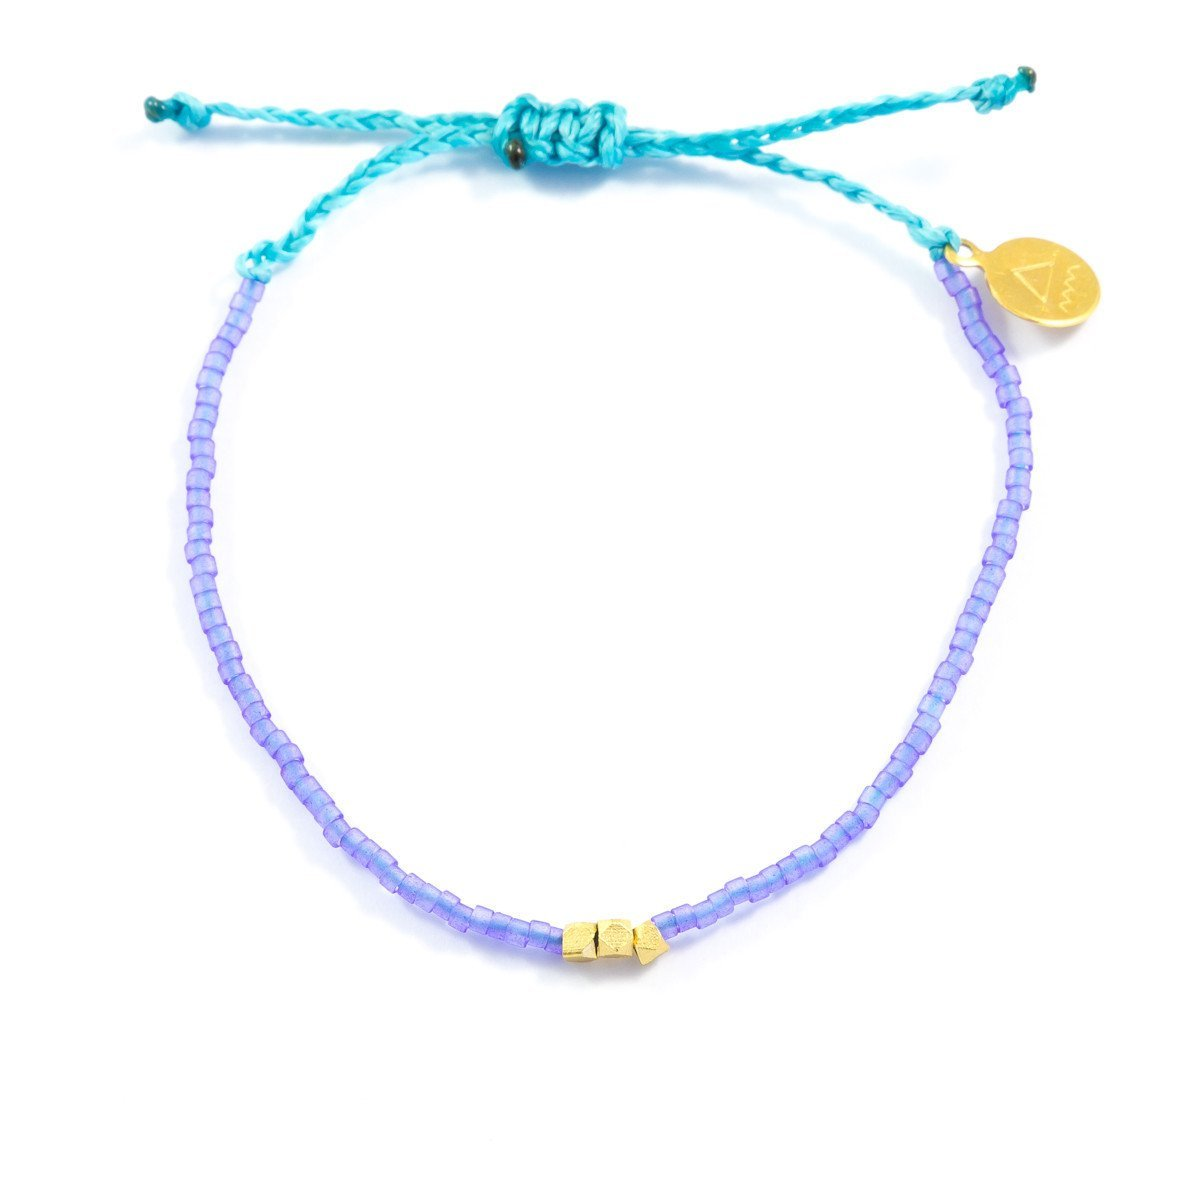 Sea Glass Blue & Teal Gold Beaded Bracelet